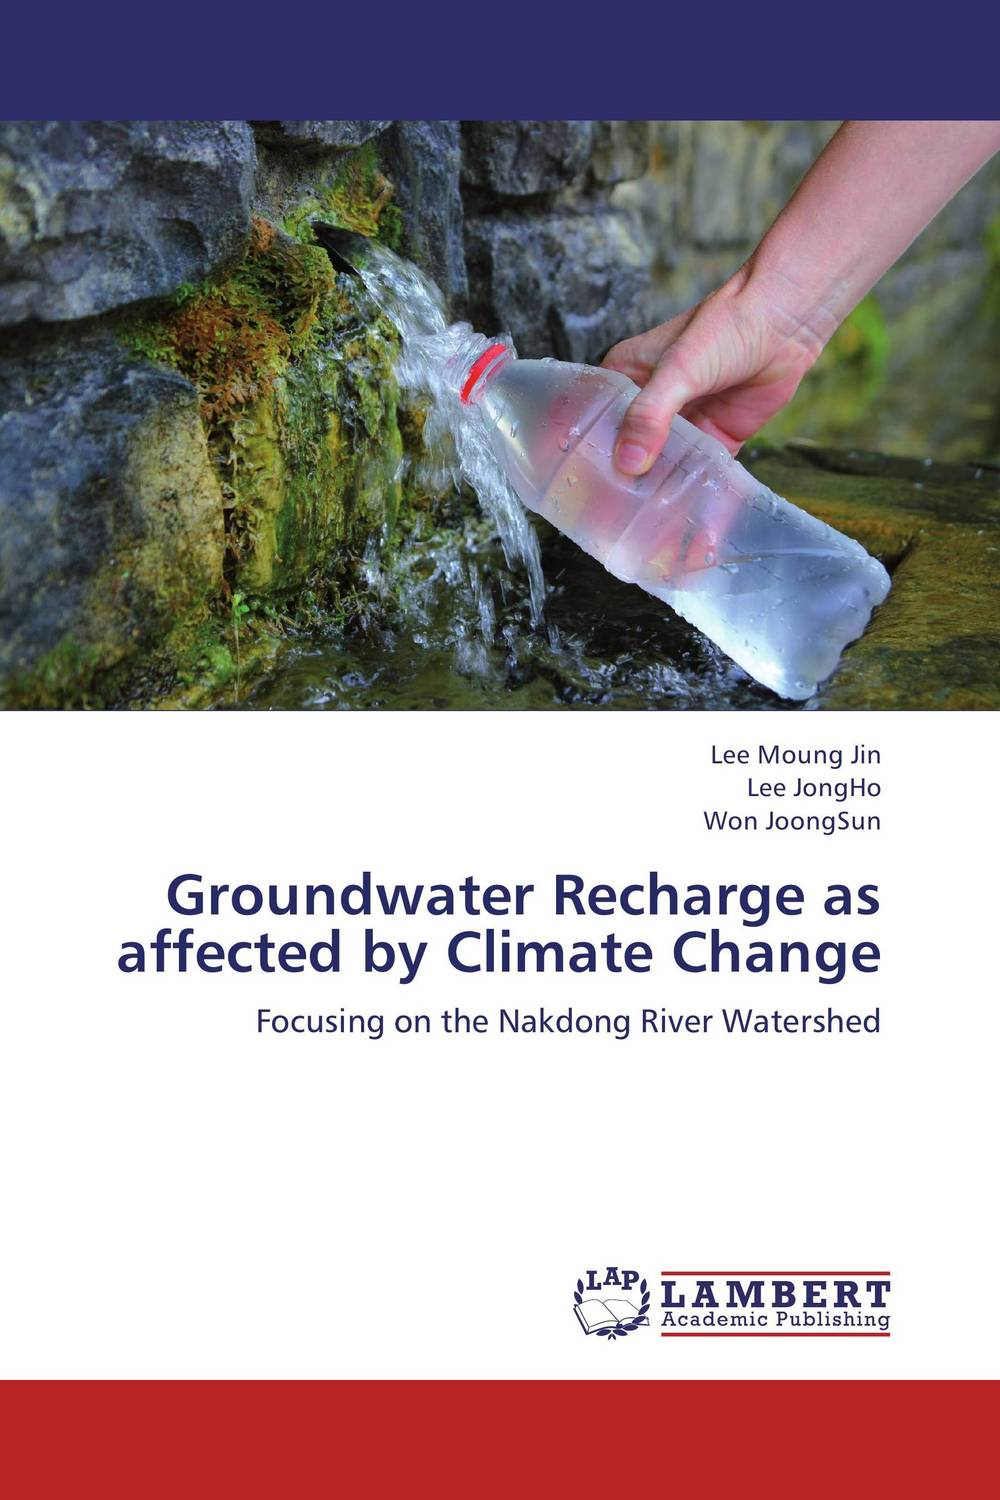 Groundwater Recharge as affected by Climate Change impact of groundwater recharge on the surrounding environment